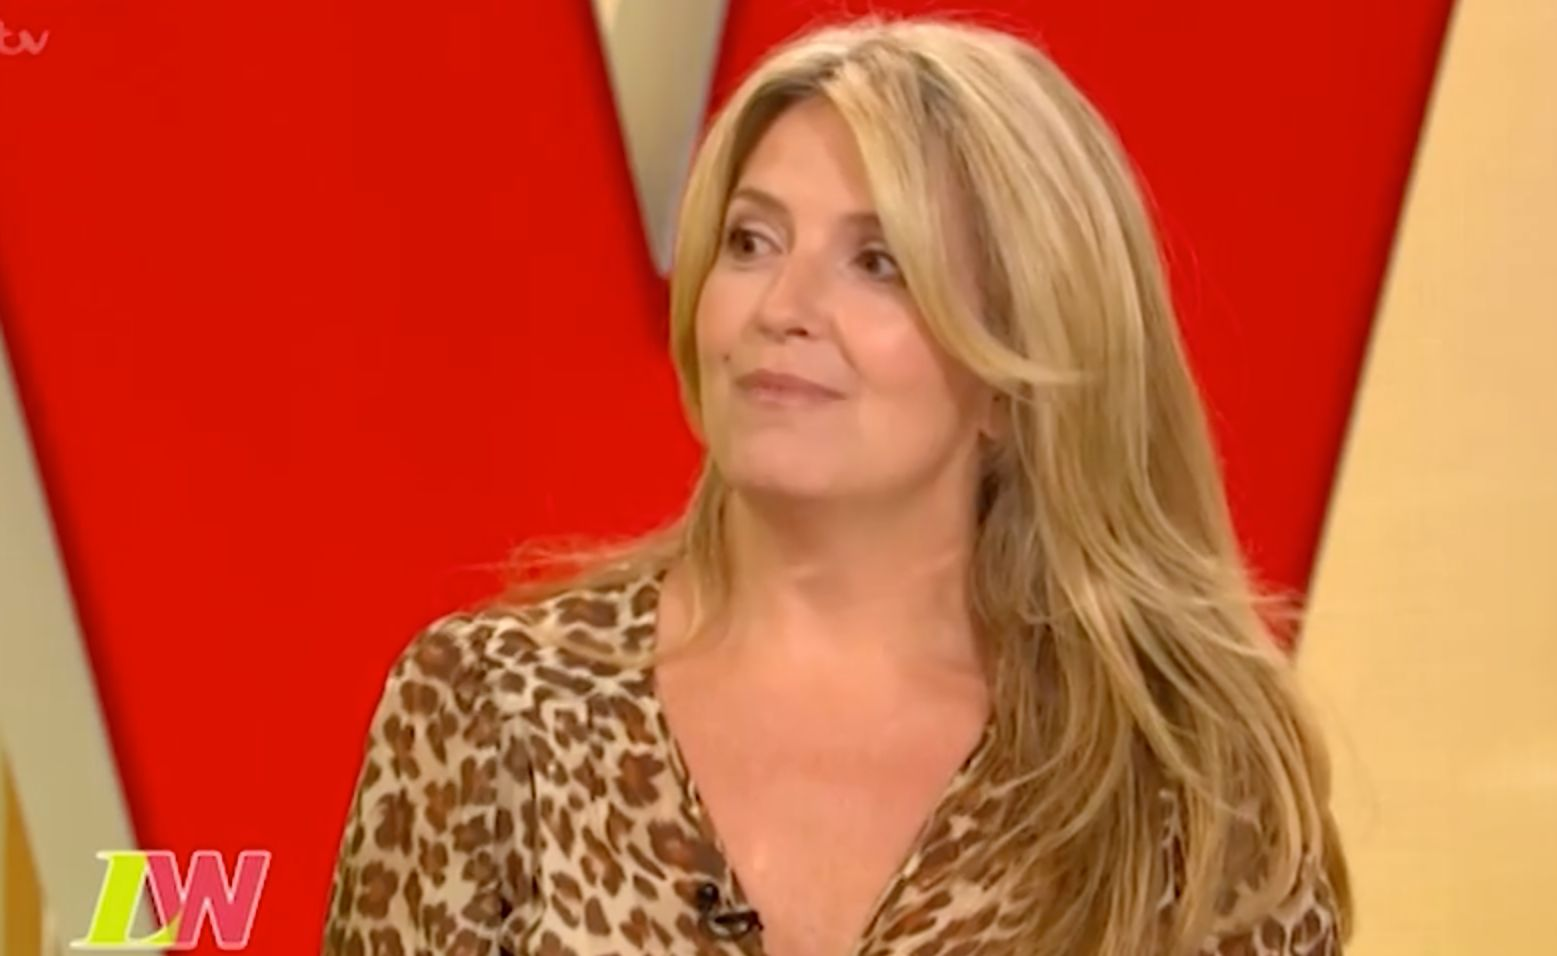 Loose Women's Penny Lancaster Apologises After Mistakenly Saying Burt Bacharach Was Dead